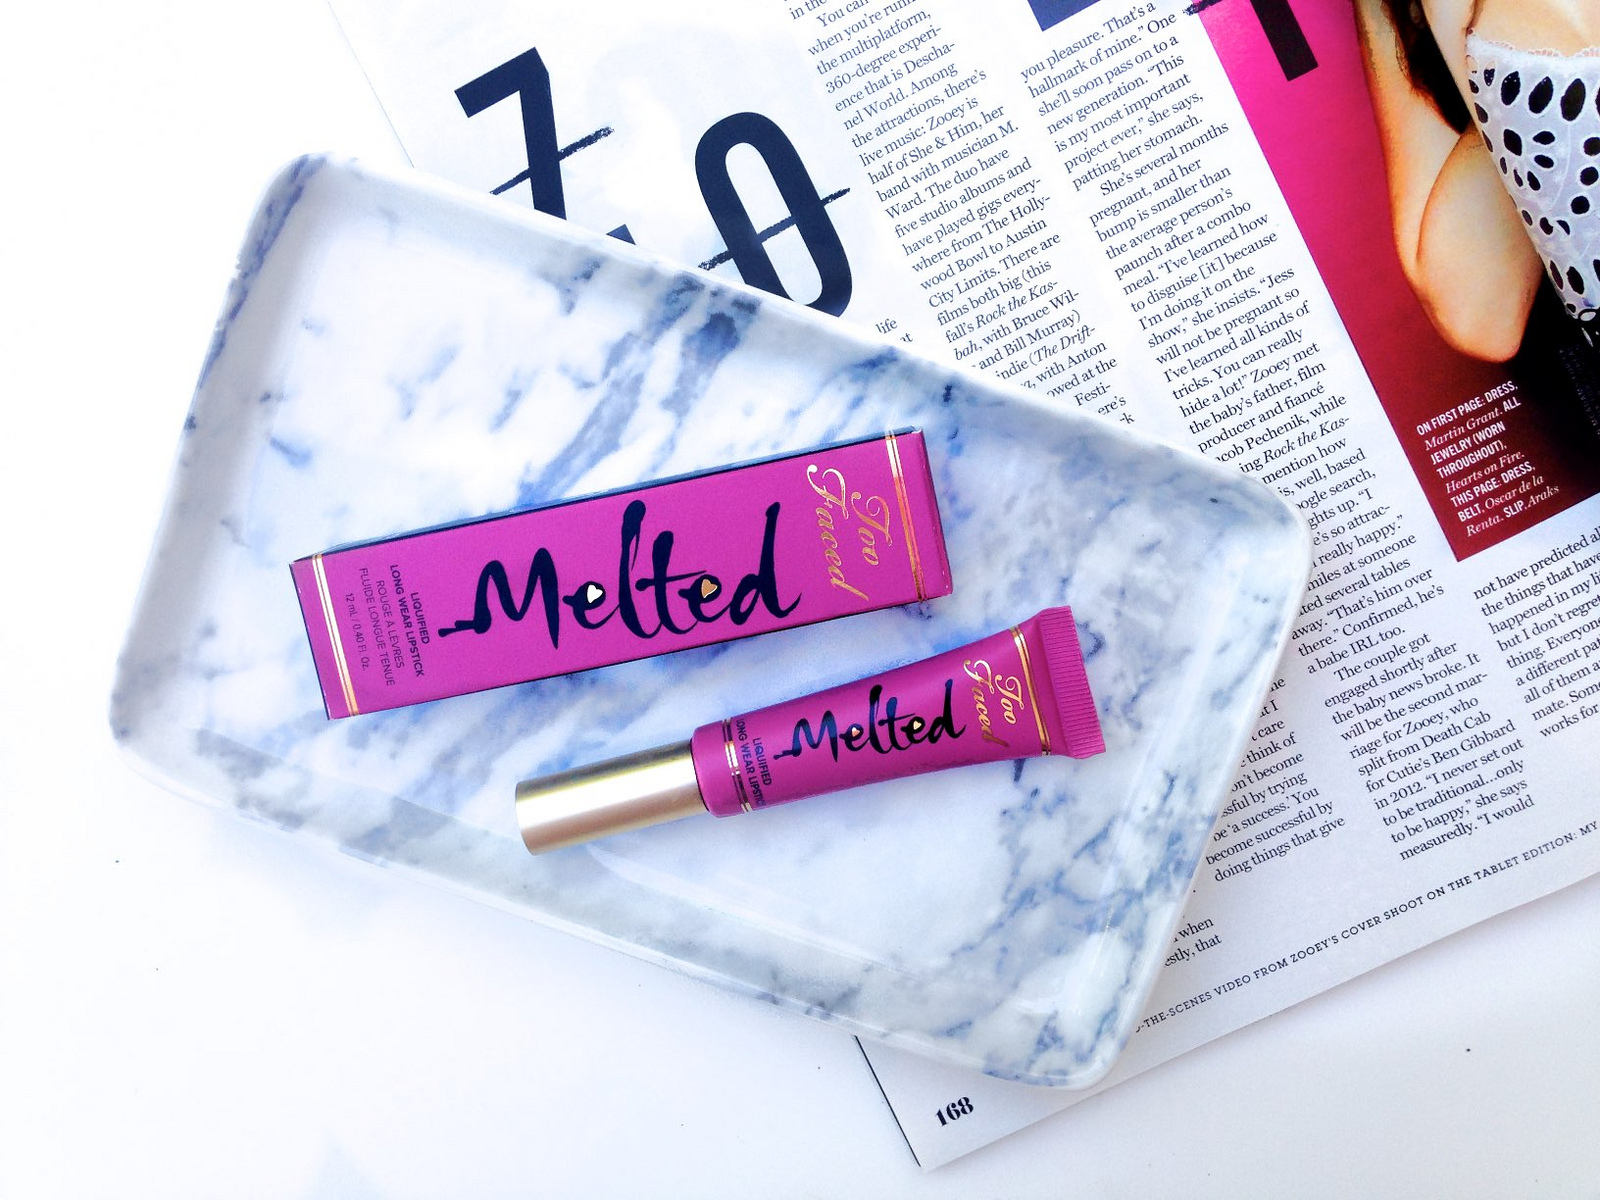 Too Faced Melted Lipstick in Fig